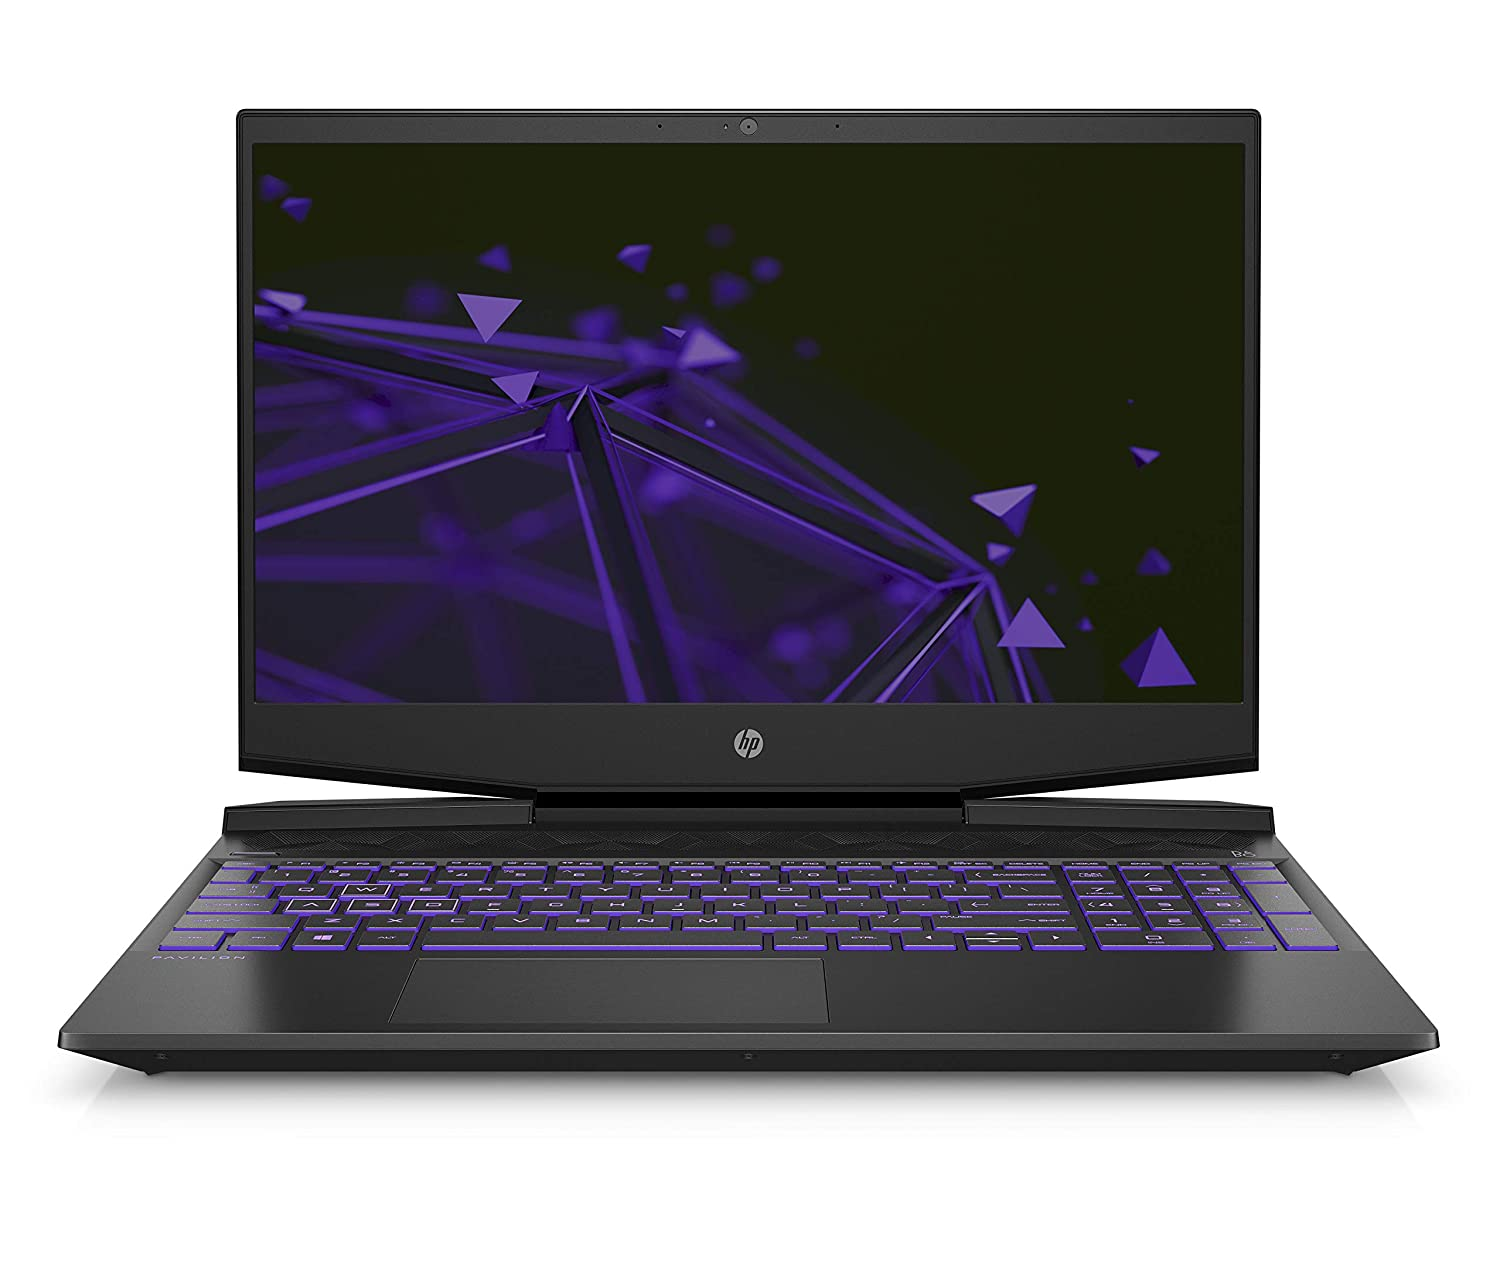 HP Pavilion Gaming DK0268TX 15.6-inch Laptop (Core i5-9300H/8GB/512GB SSD/Windows 10 Home/4GB NVIDIA GeForce GTX 1650 Graphics), Shadow Black